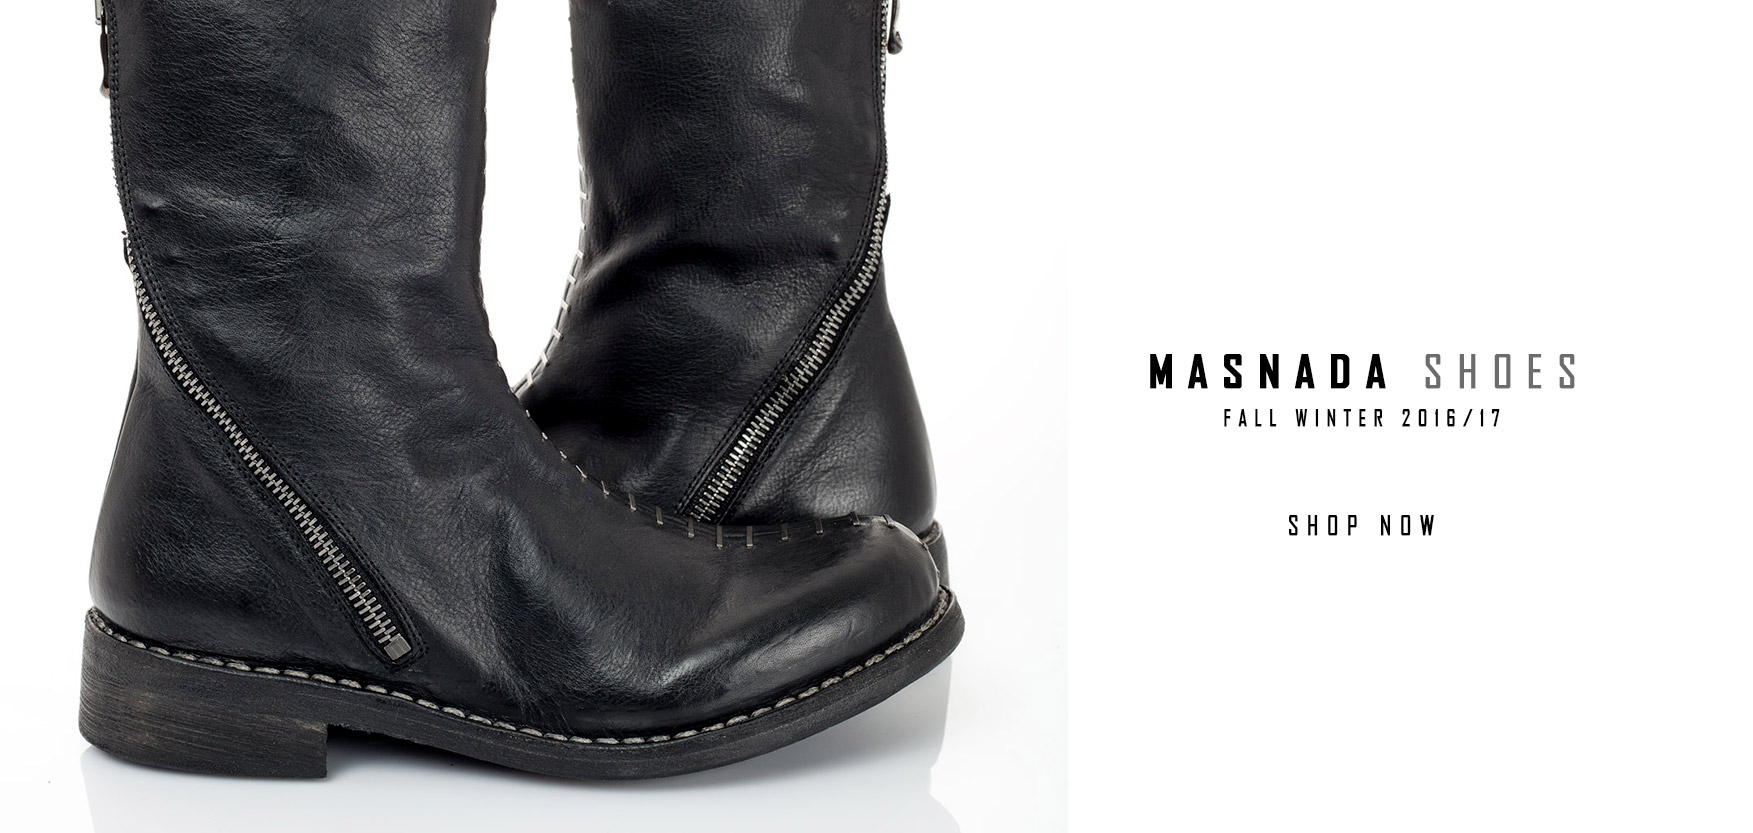 MASNADA SHOES